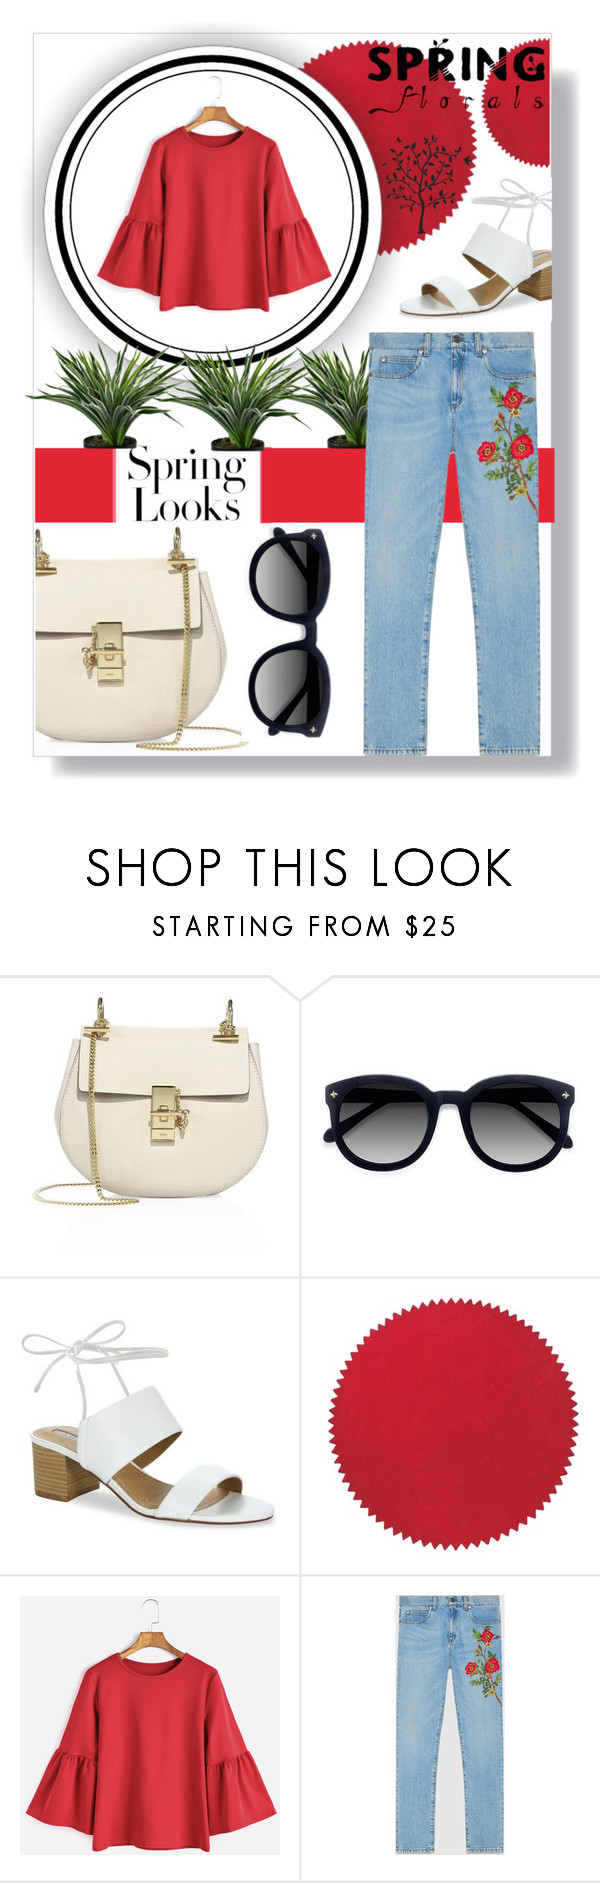 """#18"" by carolin-wm ❤ liked on Polyvore featuring Chloé, Ace, H&M, Tahari, nanimarquina, Gucci and Godinger"